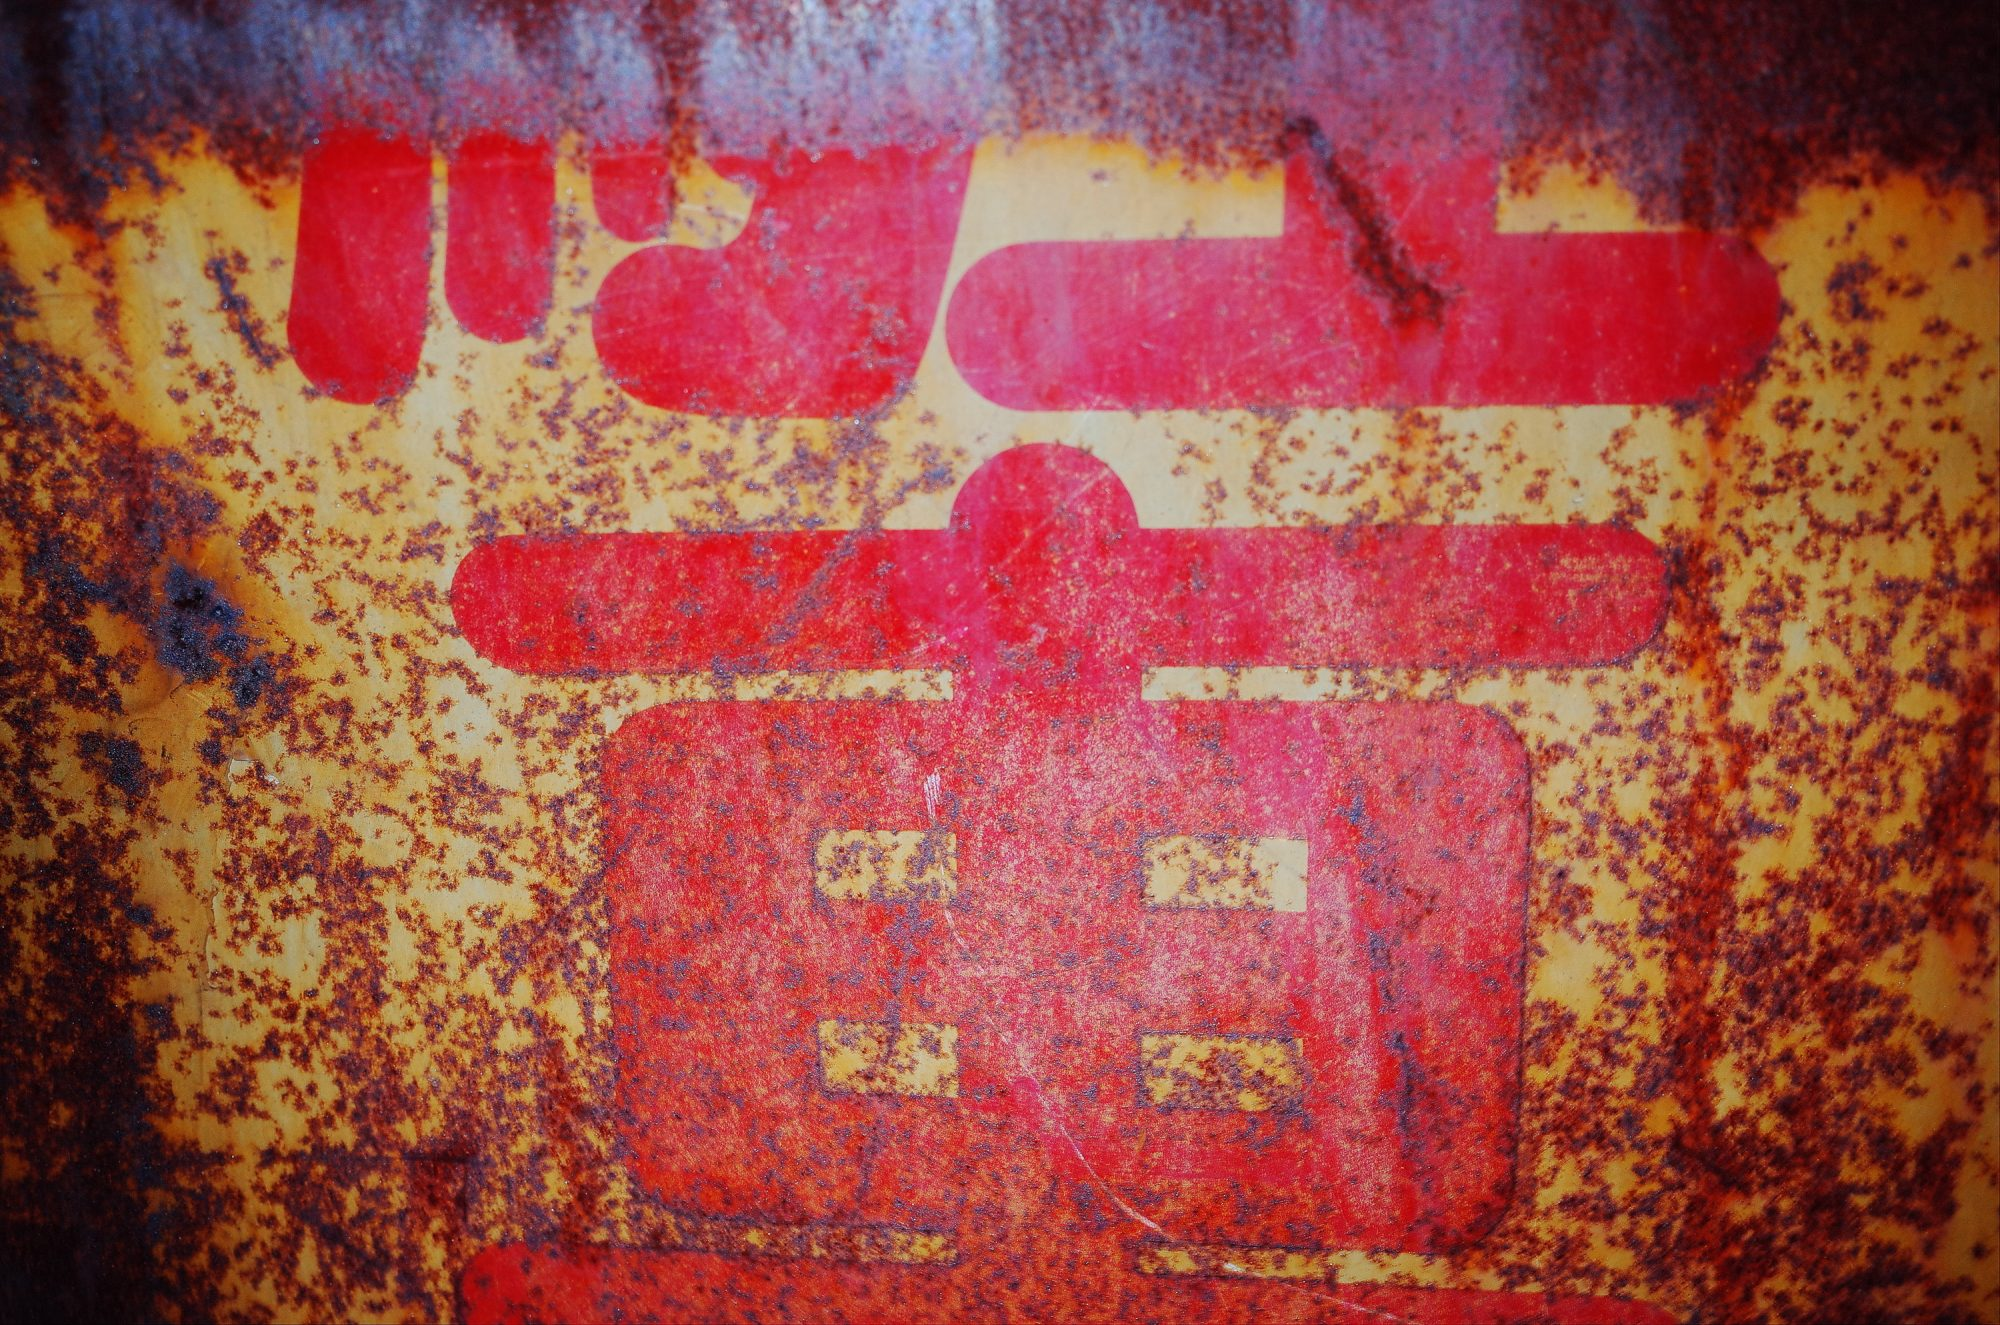 Red and yellow texture. Osaka, 2018